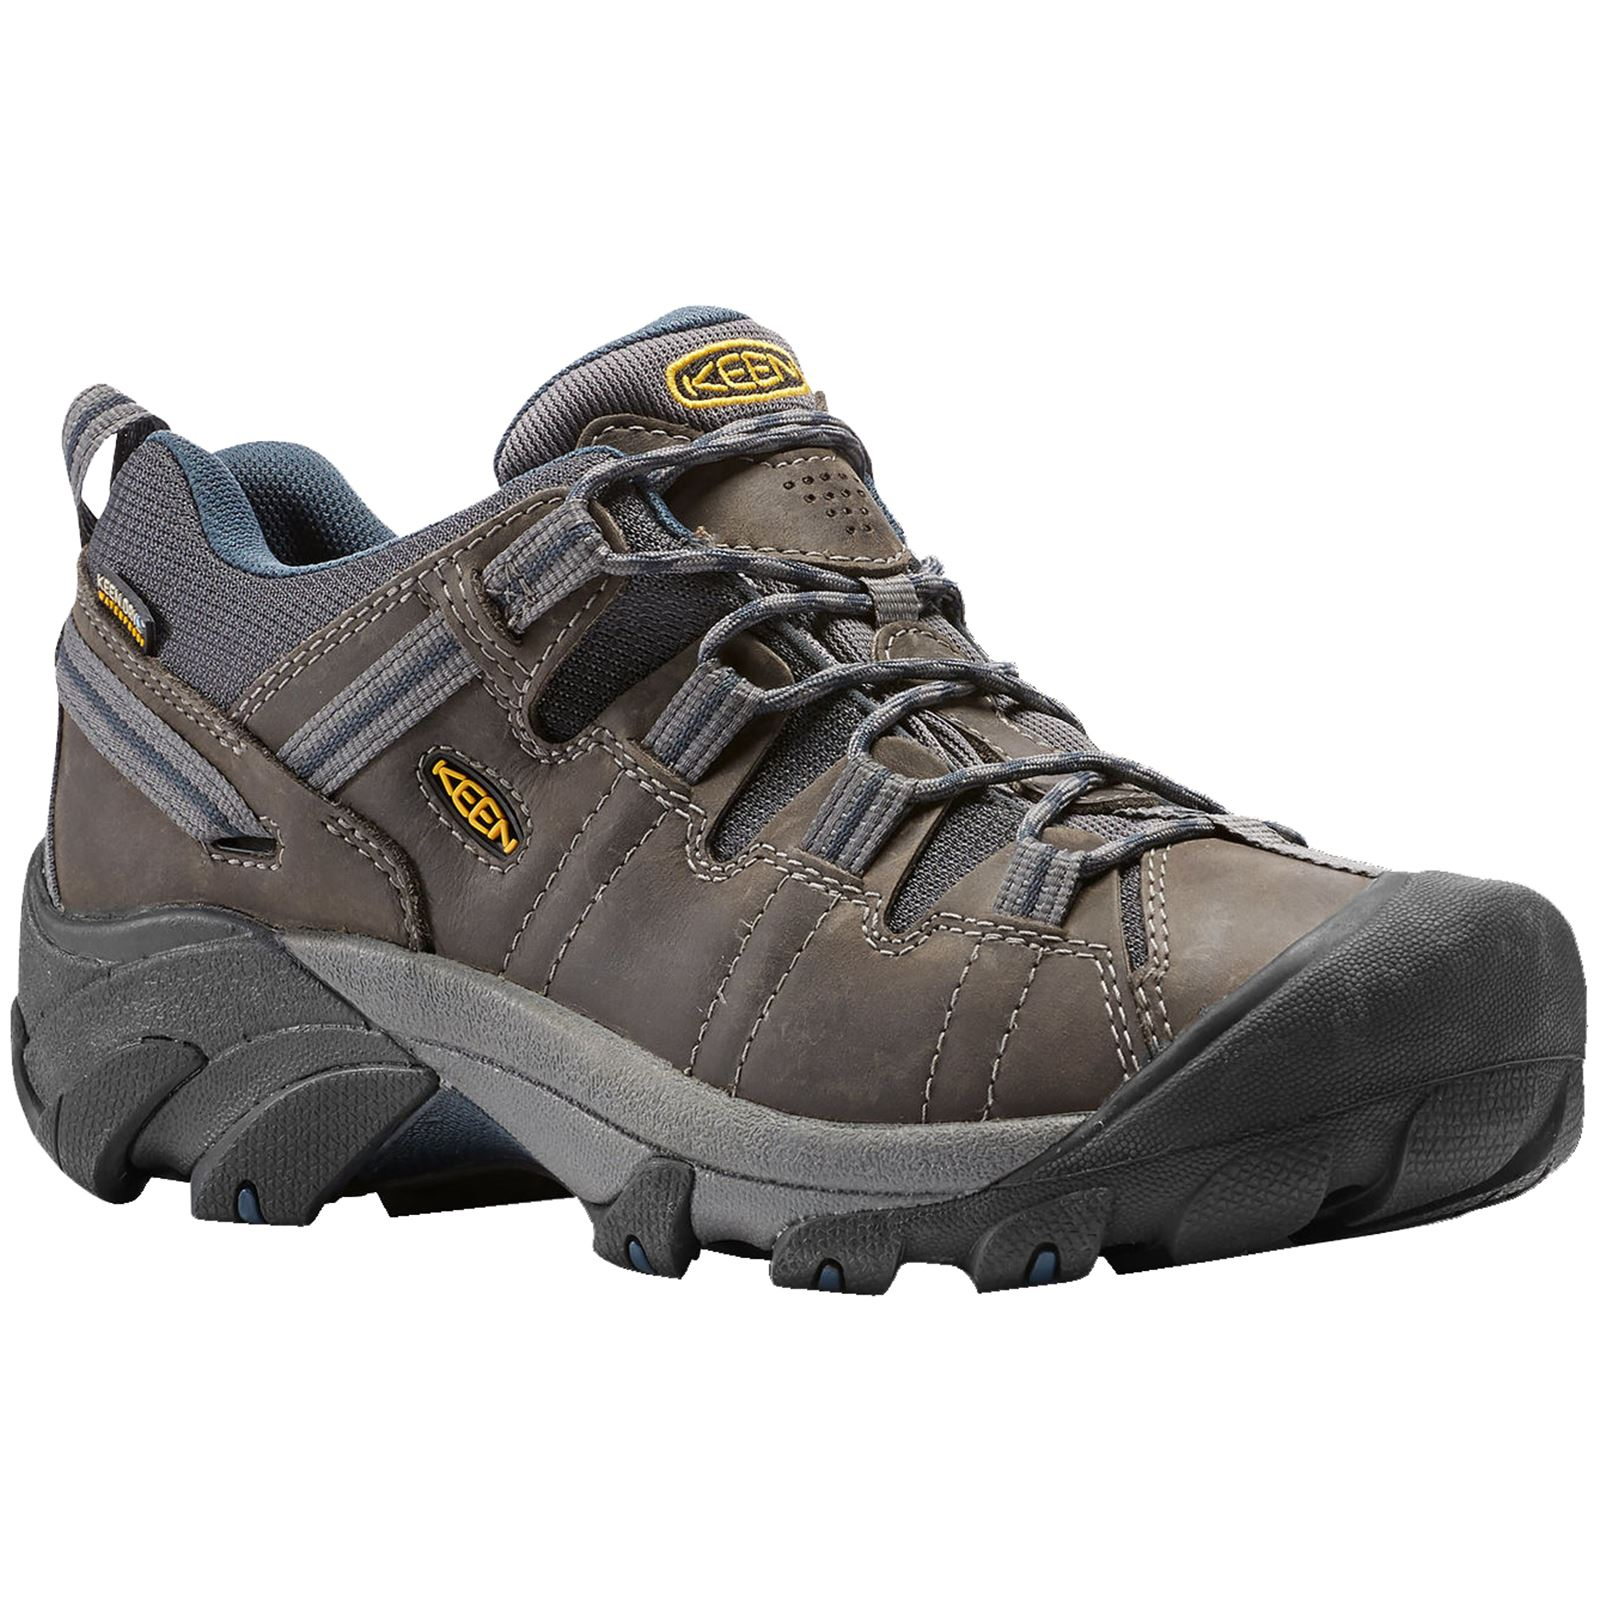 179319c2da Description: Get ready to indulge in all your favourite outdoor activities  with the new Targhee II Waterproof hiking shoes from Keen.